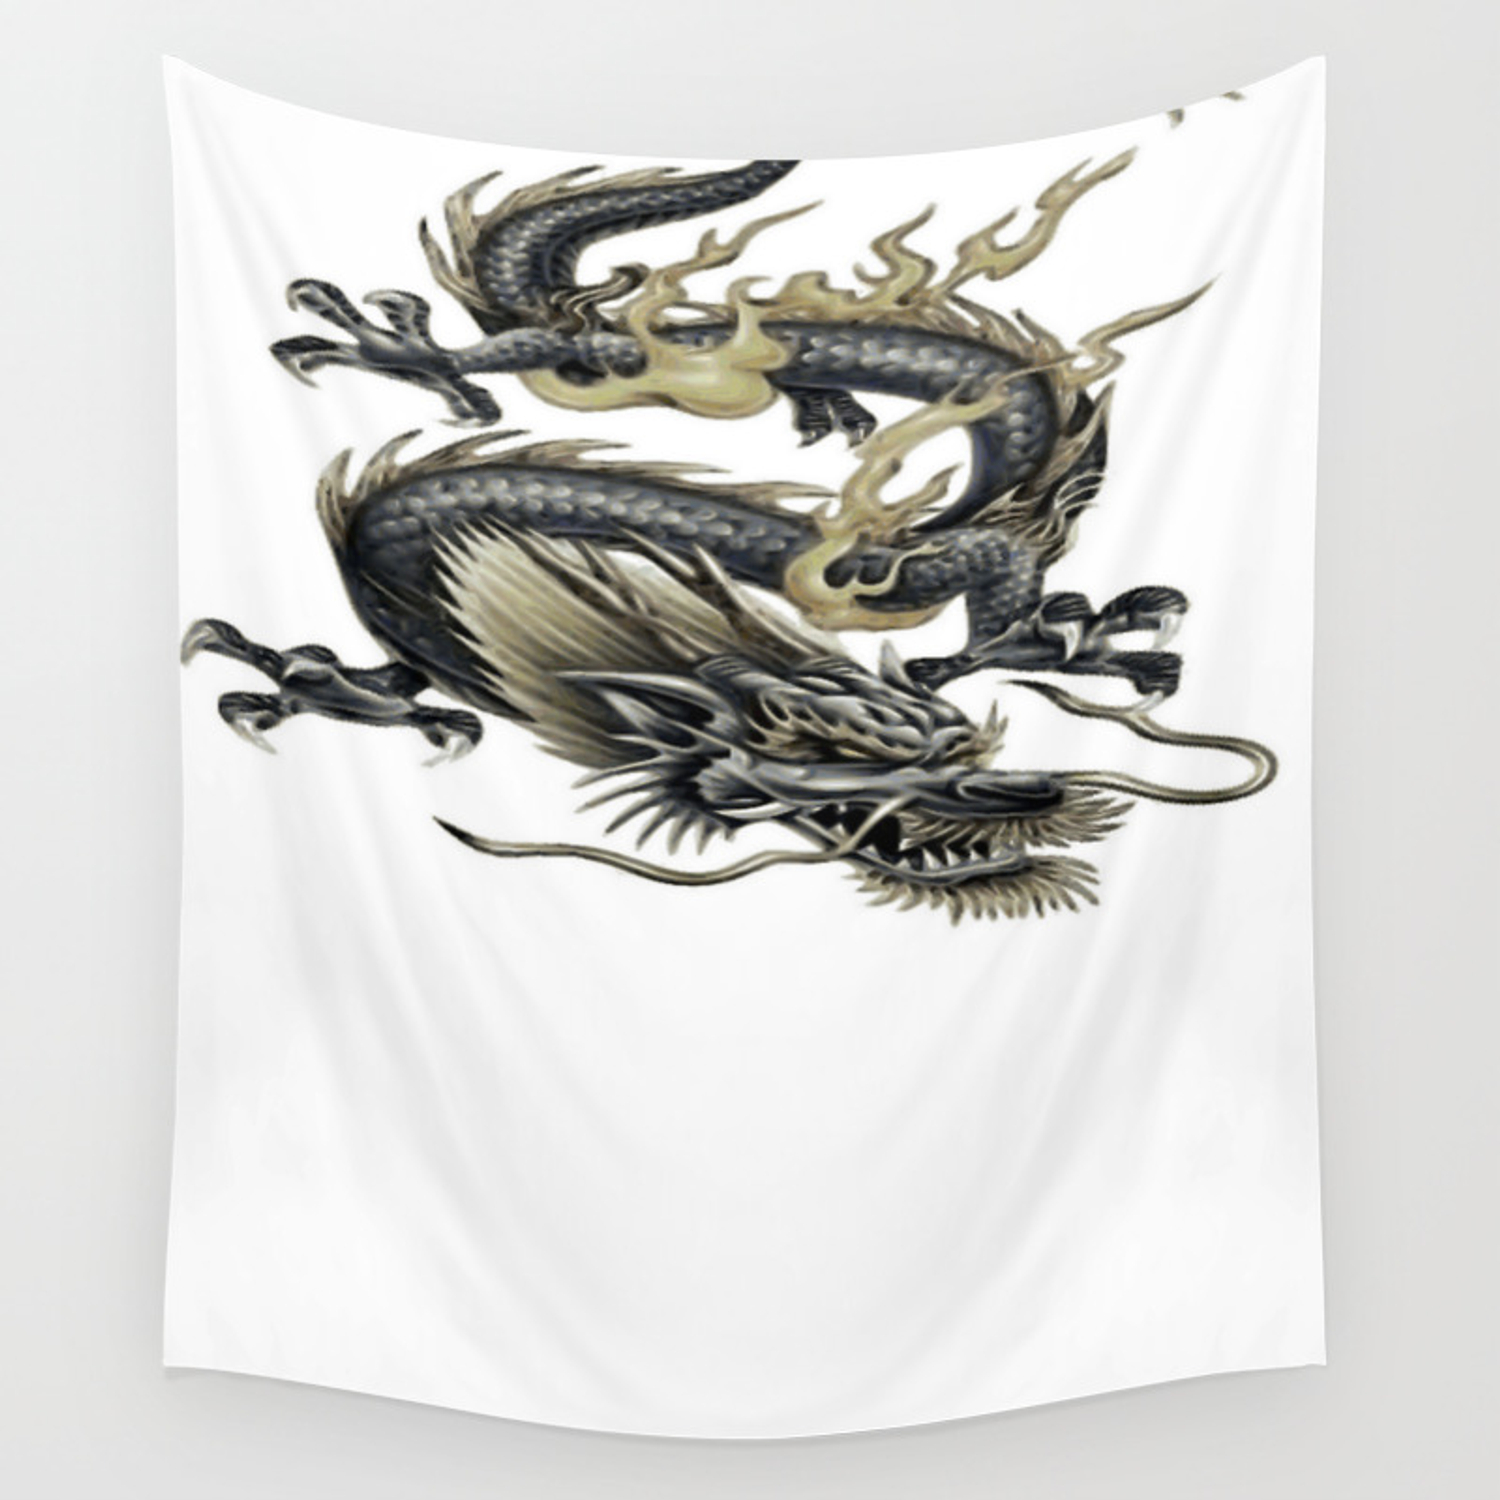 INK SKETCH CHINESE DRAGON ORIENTAL BOX CANVAS PRINT WALL ART PICTURE